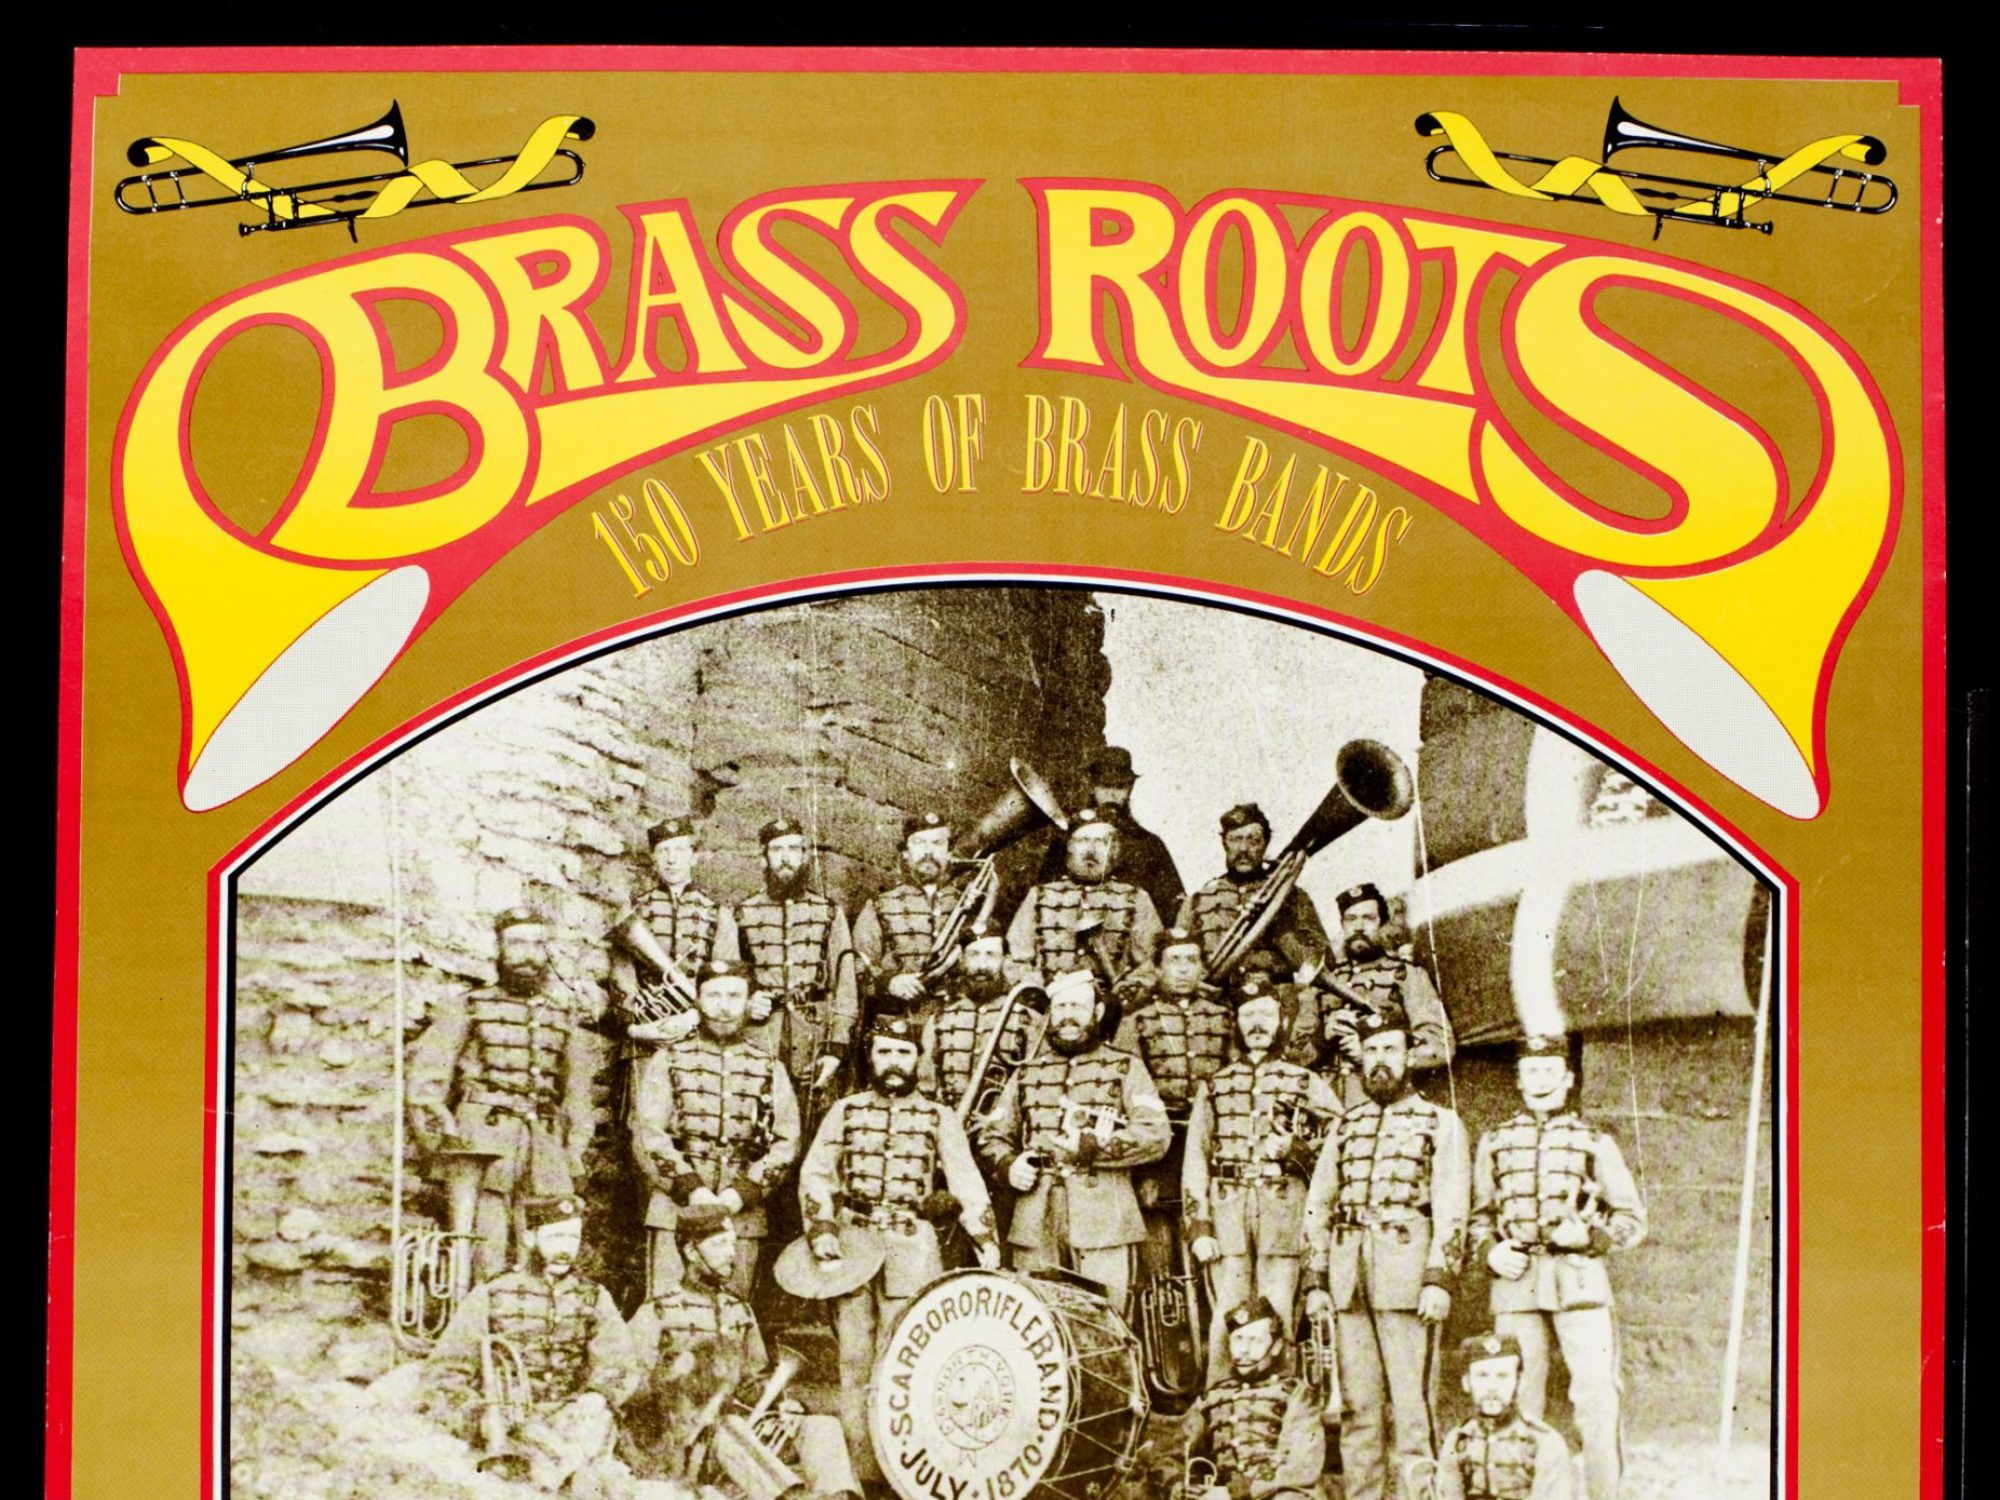 A poster about brass music with the words brass roots in yellow, made to look like brass instruments. There are black and white photographs of bands beneath